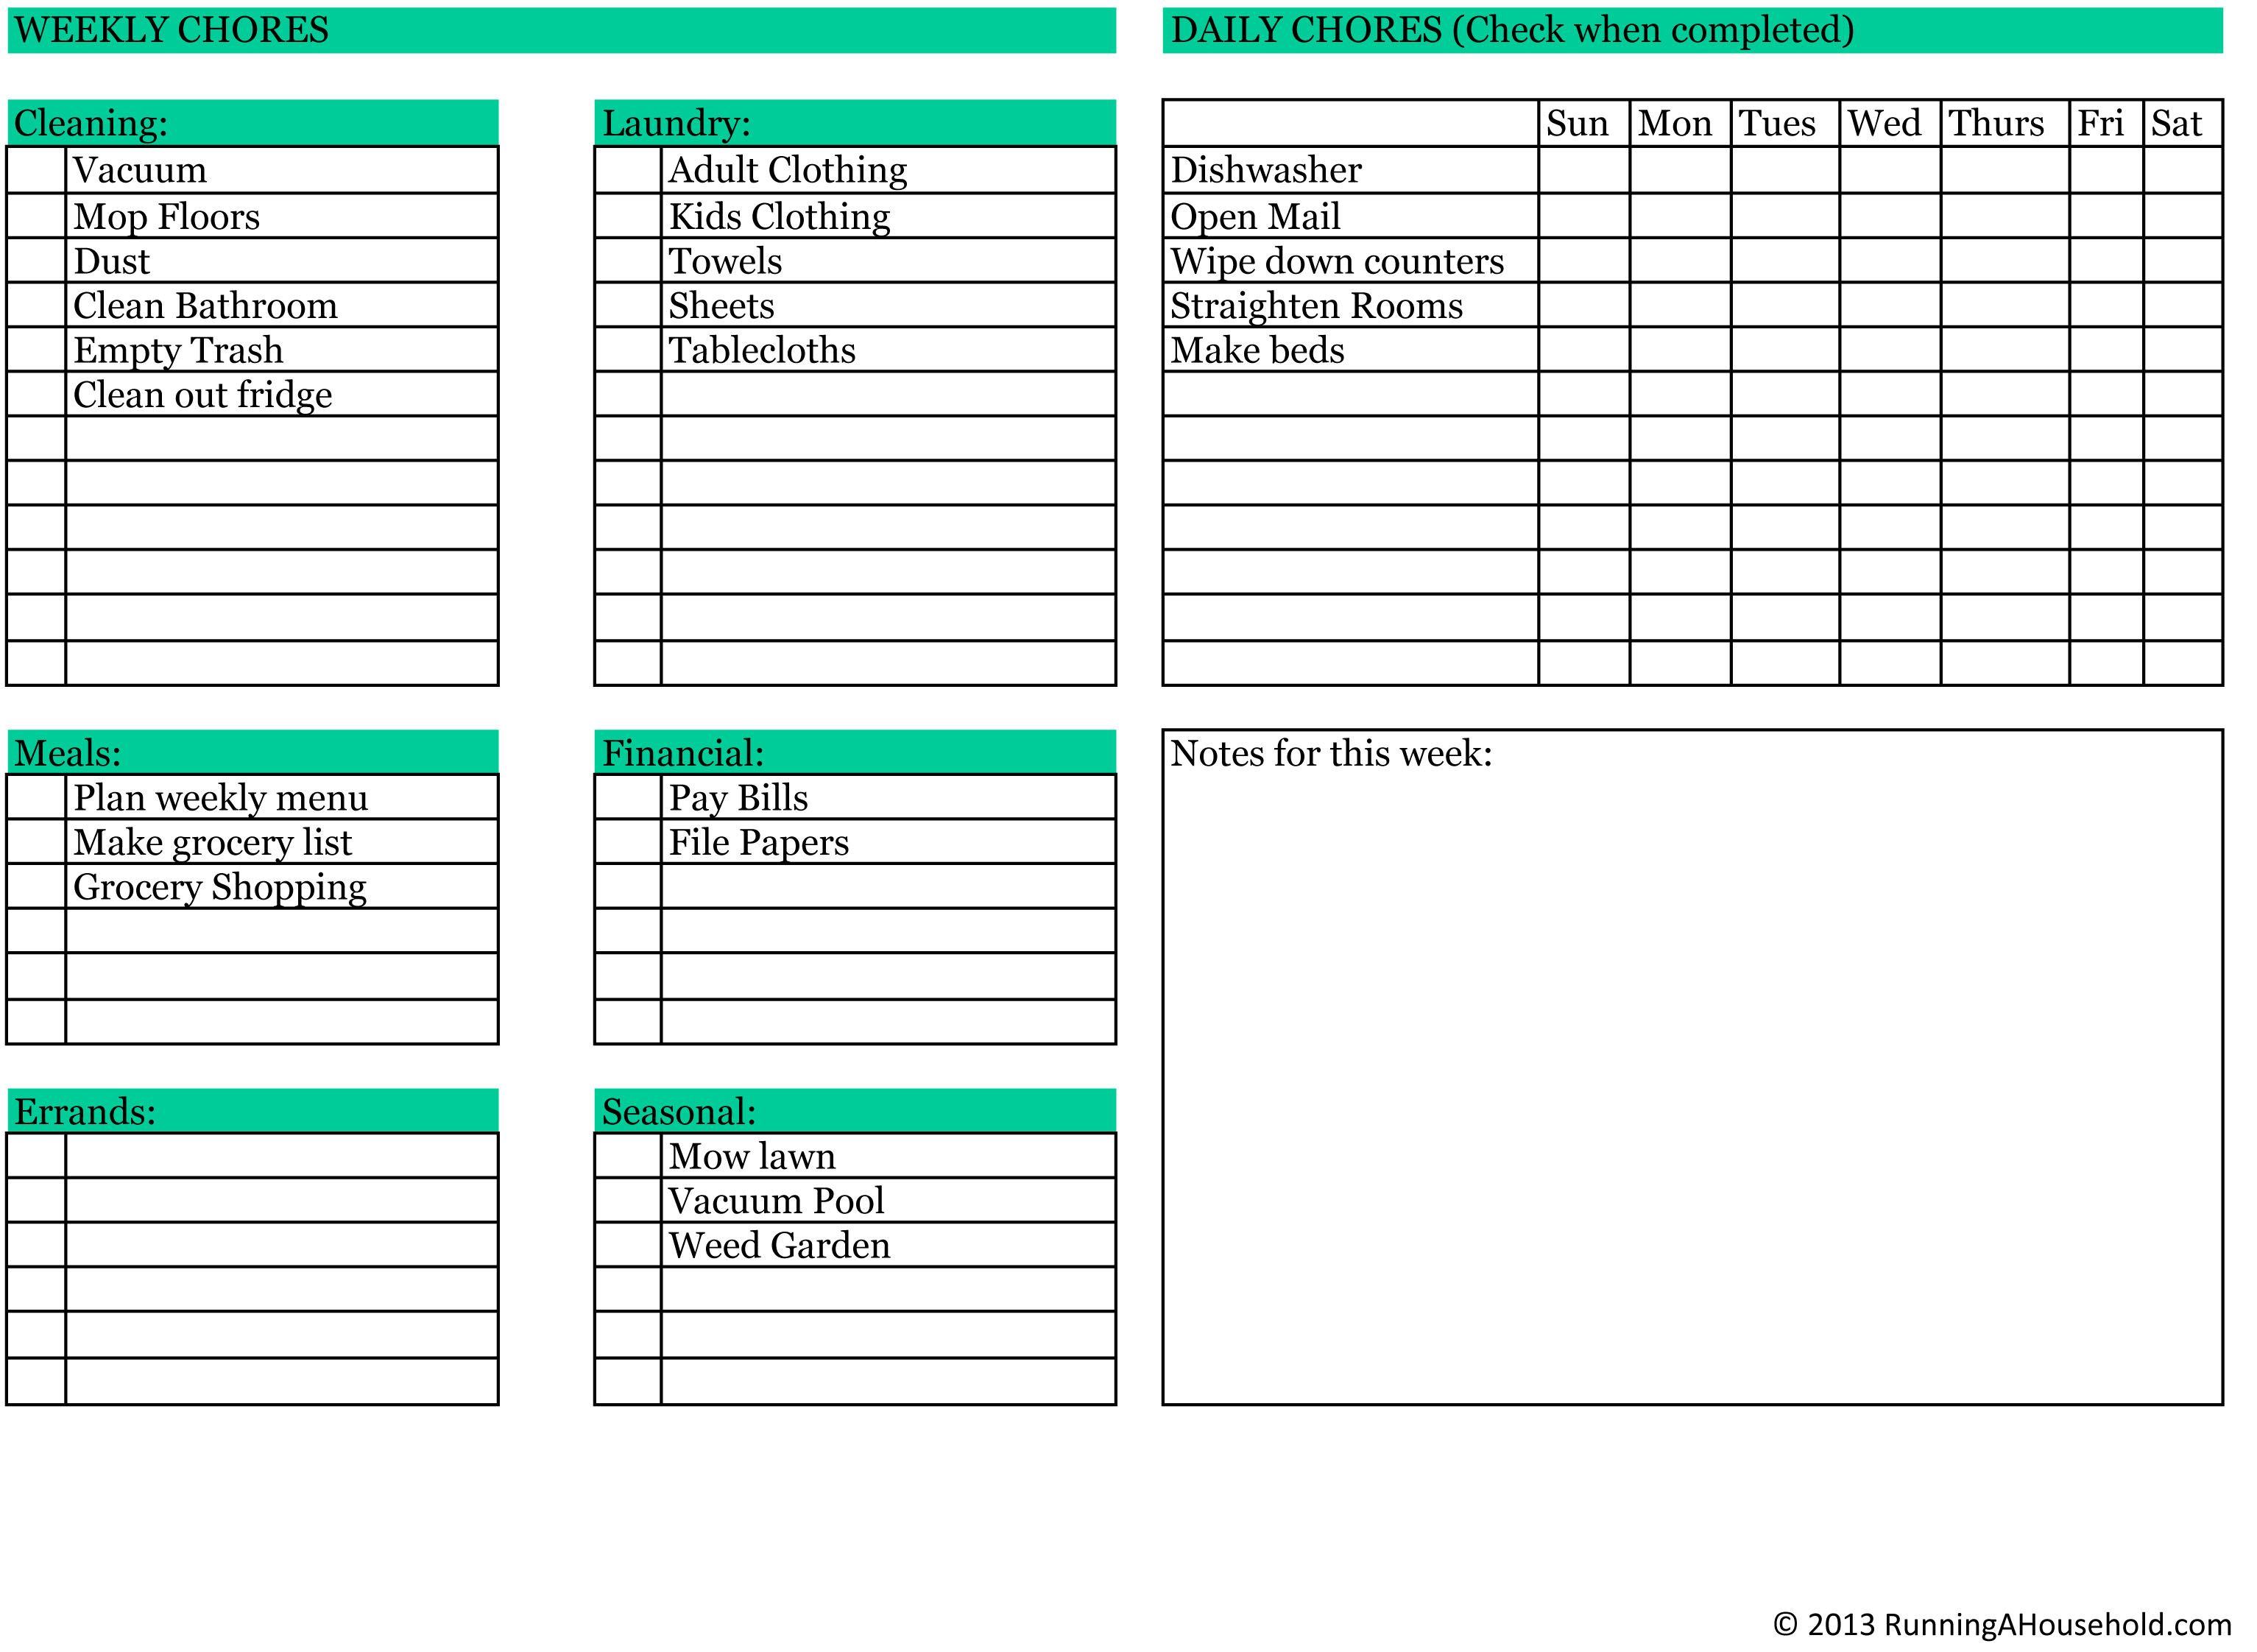 Household chores printable weekly checklist running a for House chores checklist template